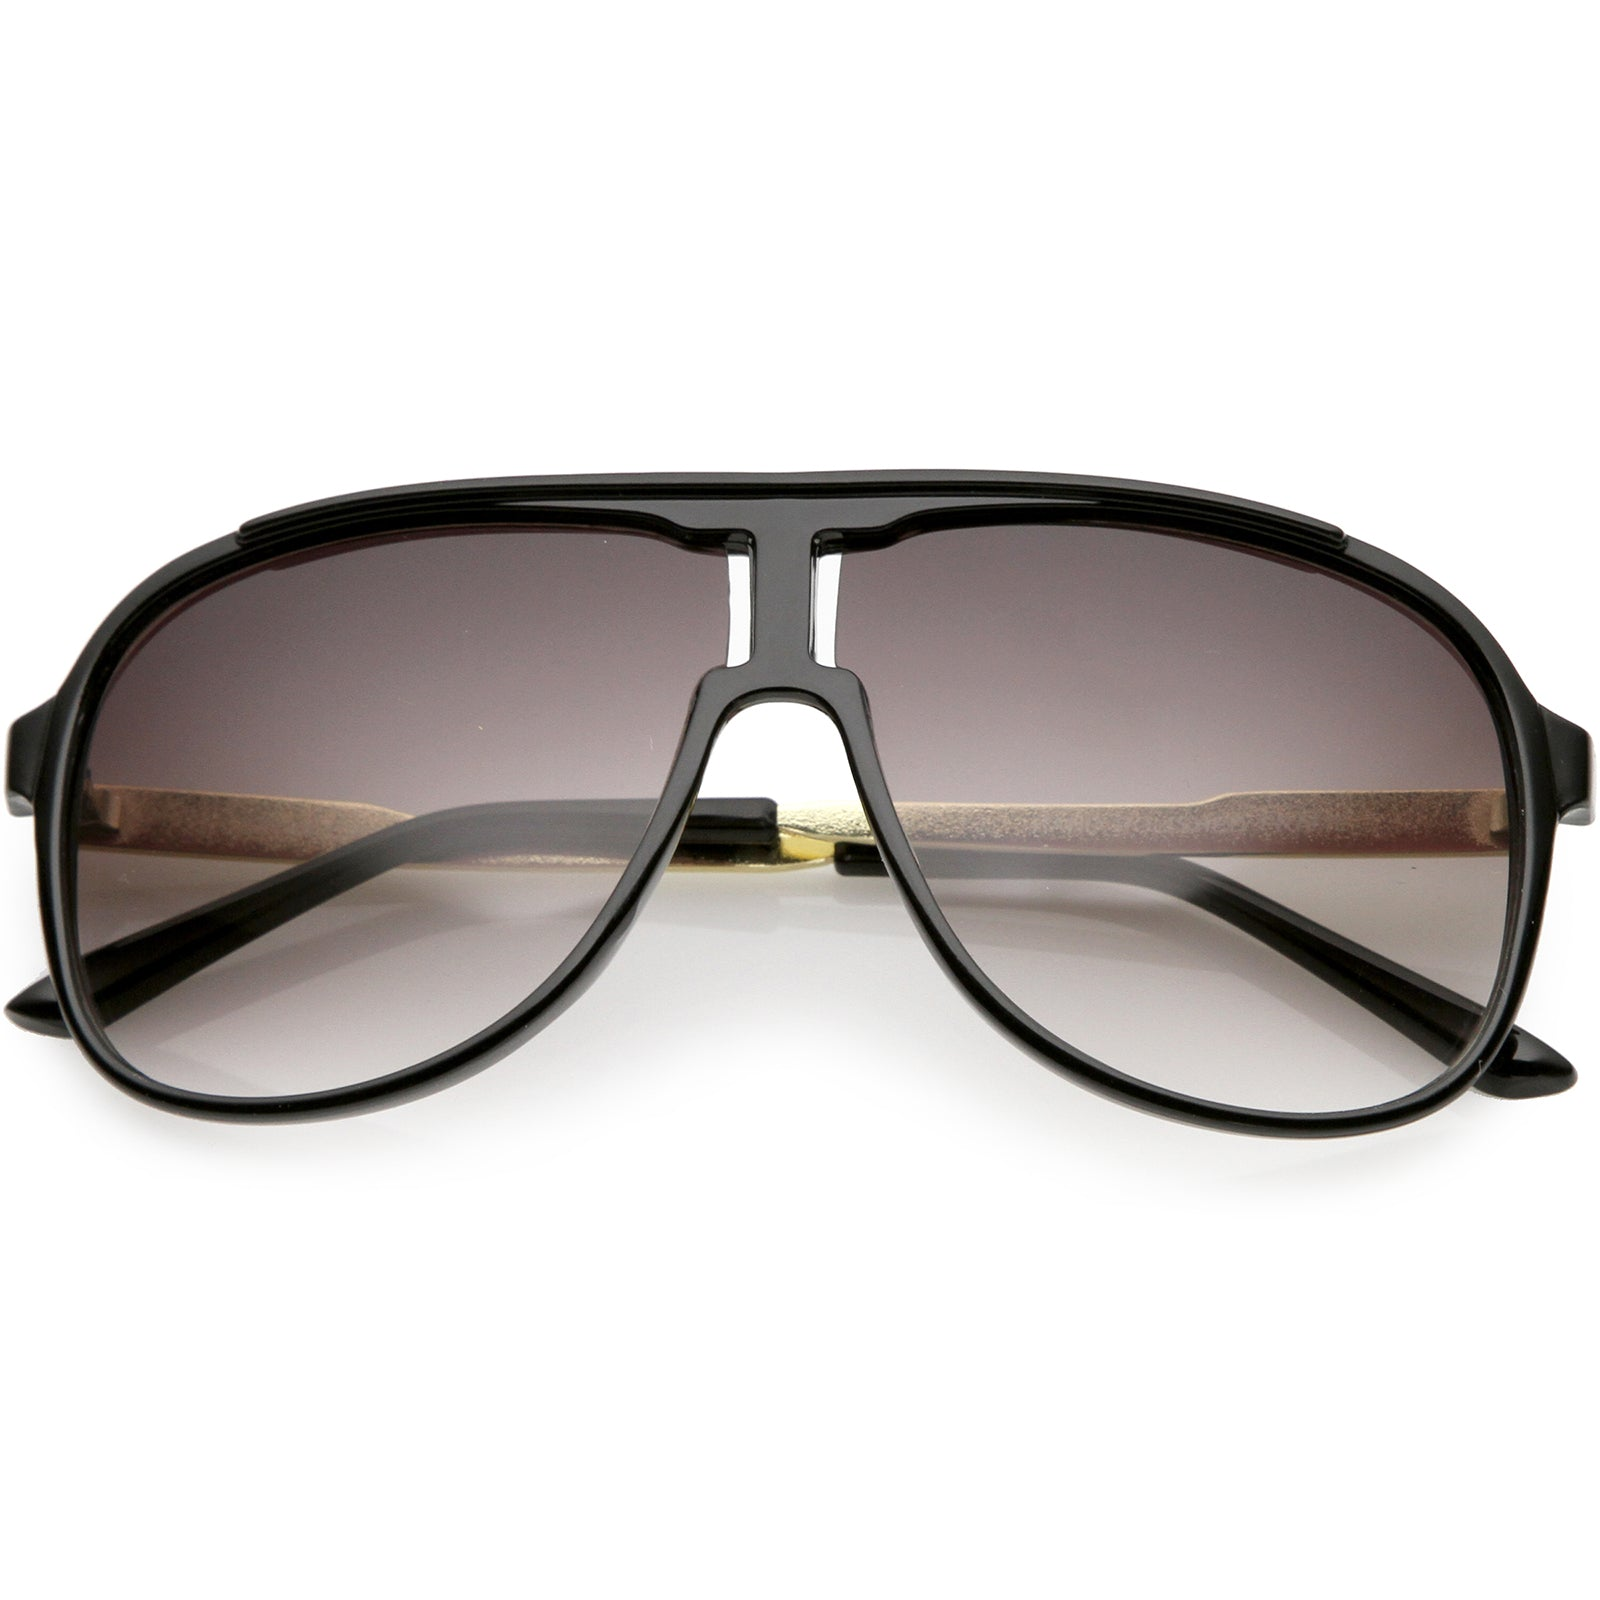 8e056437476 Men s Oversize Aviator Sunglasses Metal Arms Neutral Colored Lens ...